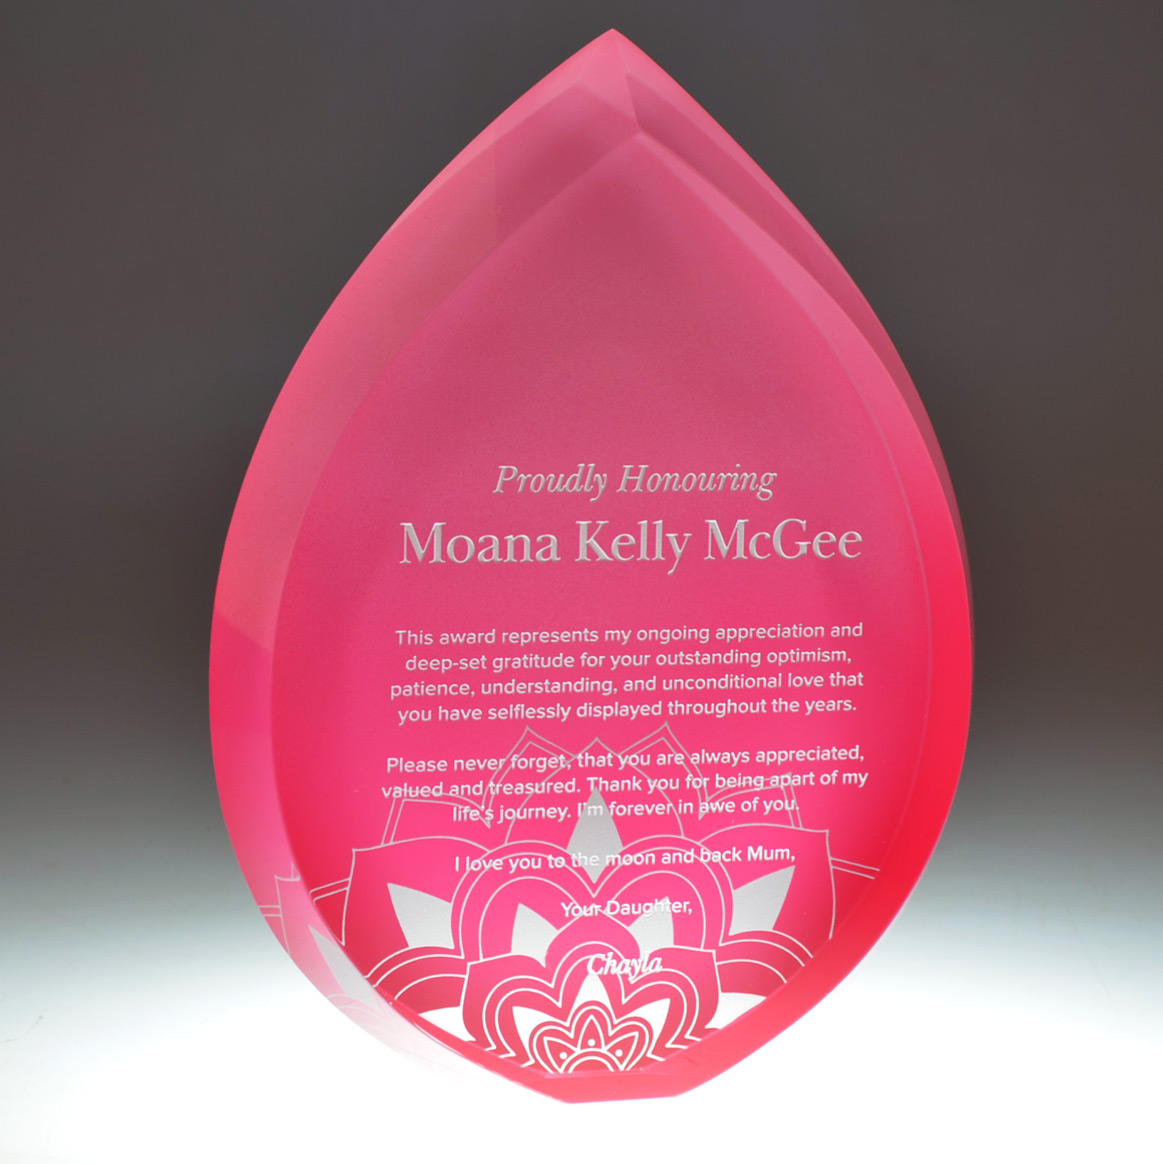 MoanaKelly crystal droplet award by Mint Awards